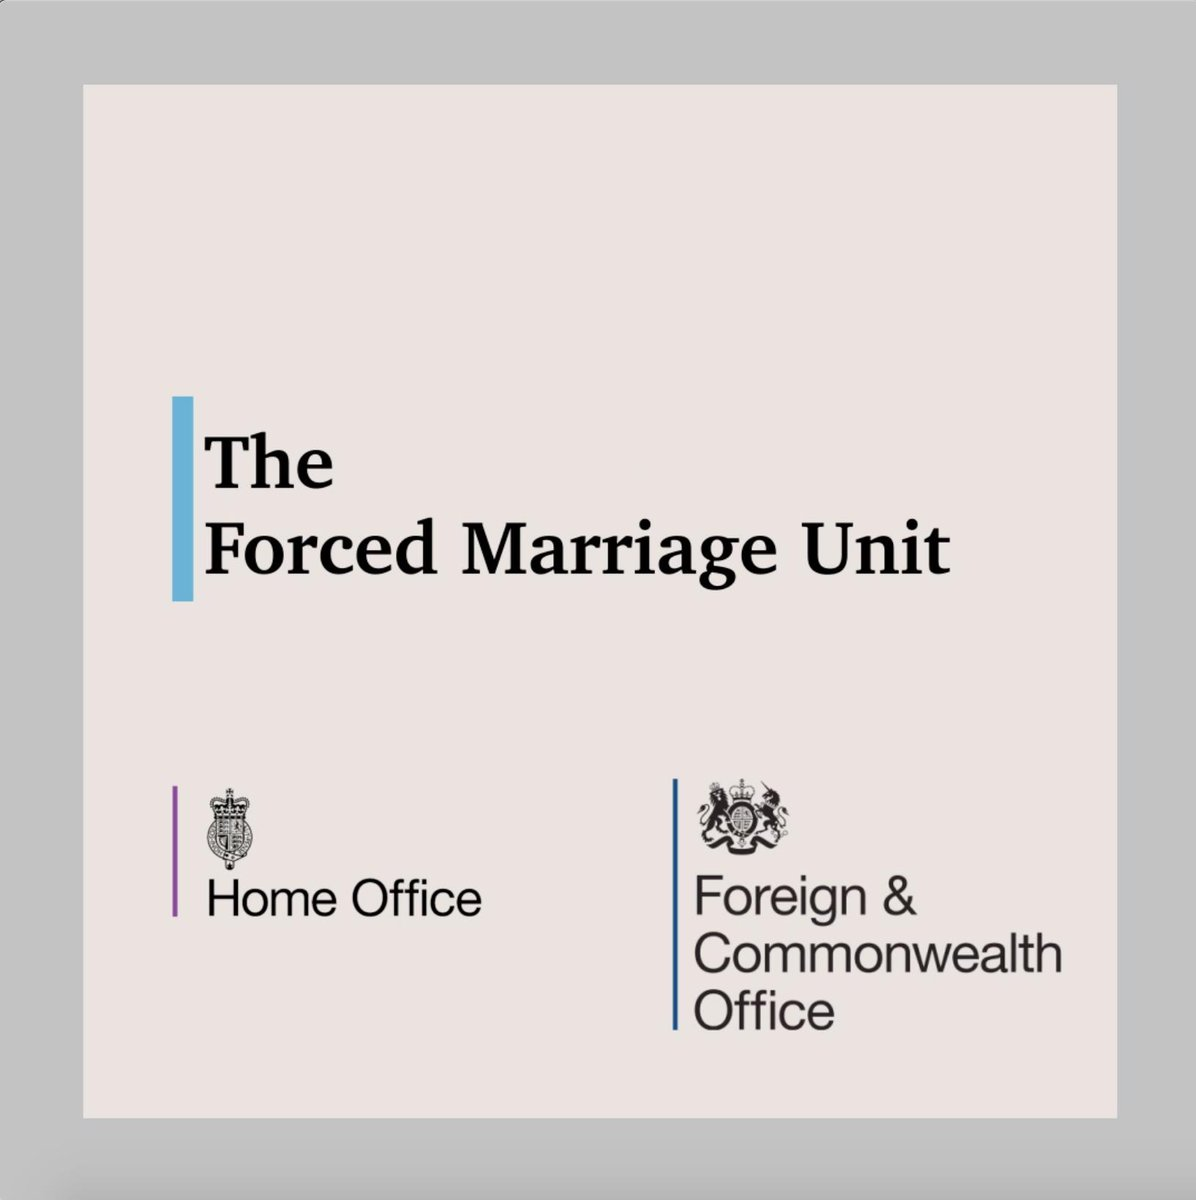 """""""We are directly interacting with victims, helping save them and changing their lives."""" Dave Myers is the Joint Head of the @FMUnit, a @ukhomeoffice & @foreignoffice team that tackles #ForcedMarriage. Watch the video to find out more about their essential work. #DayOfMemory"""